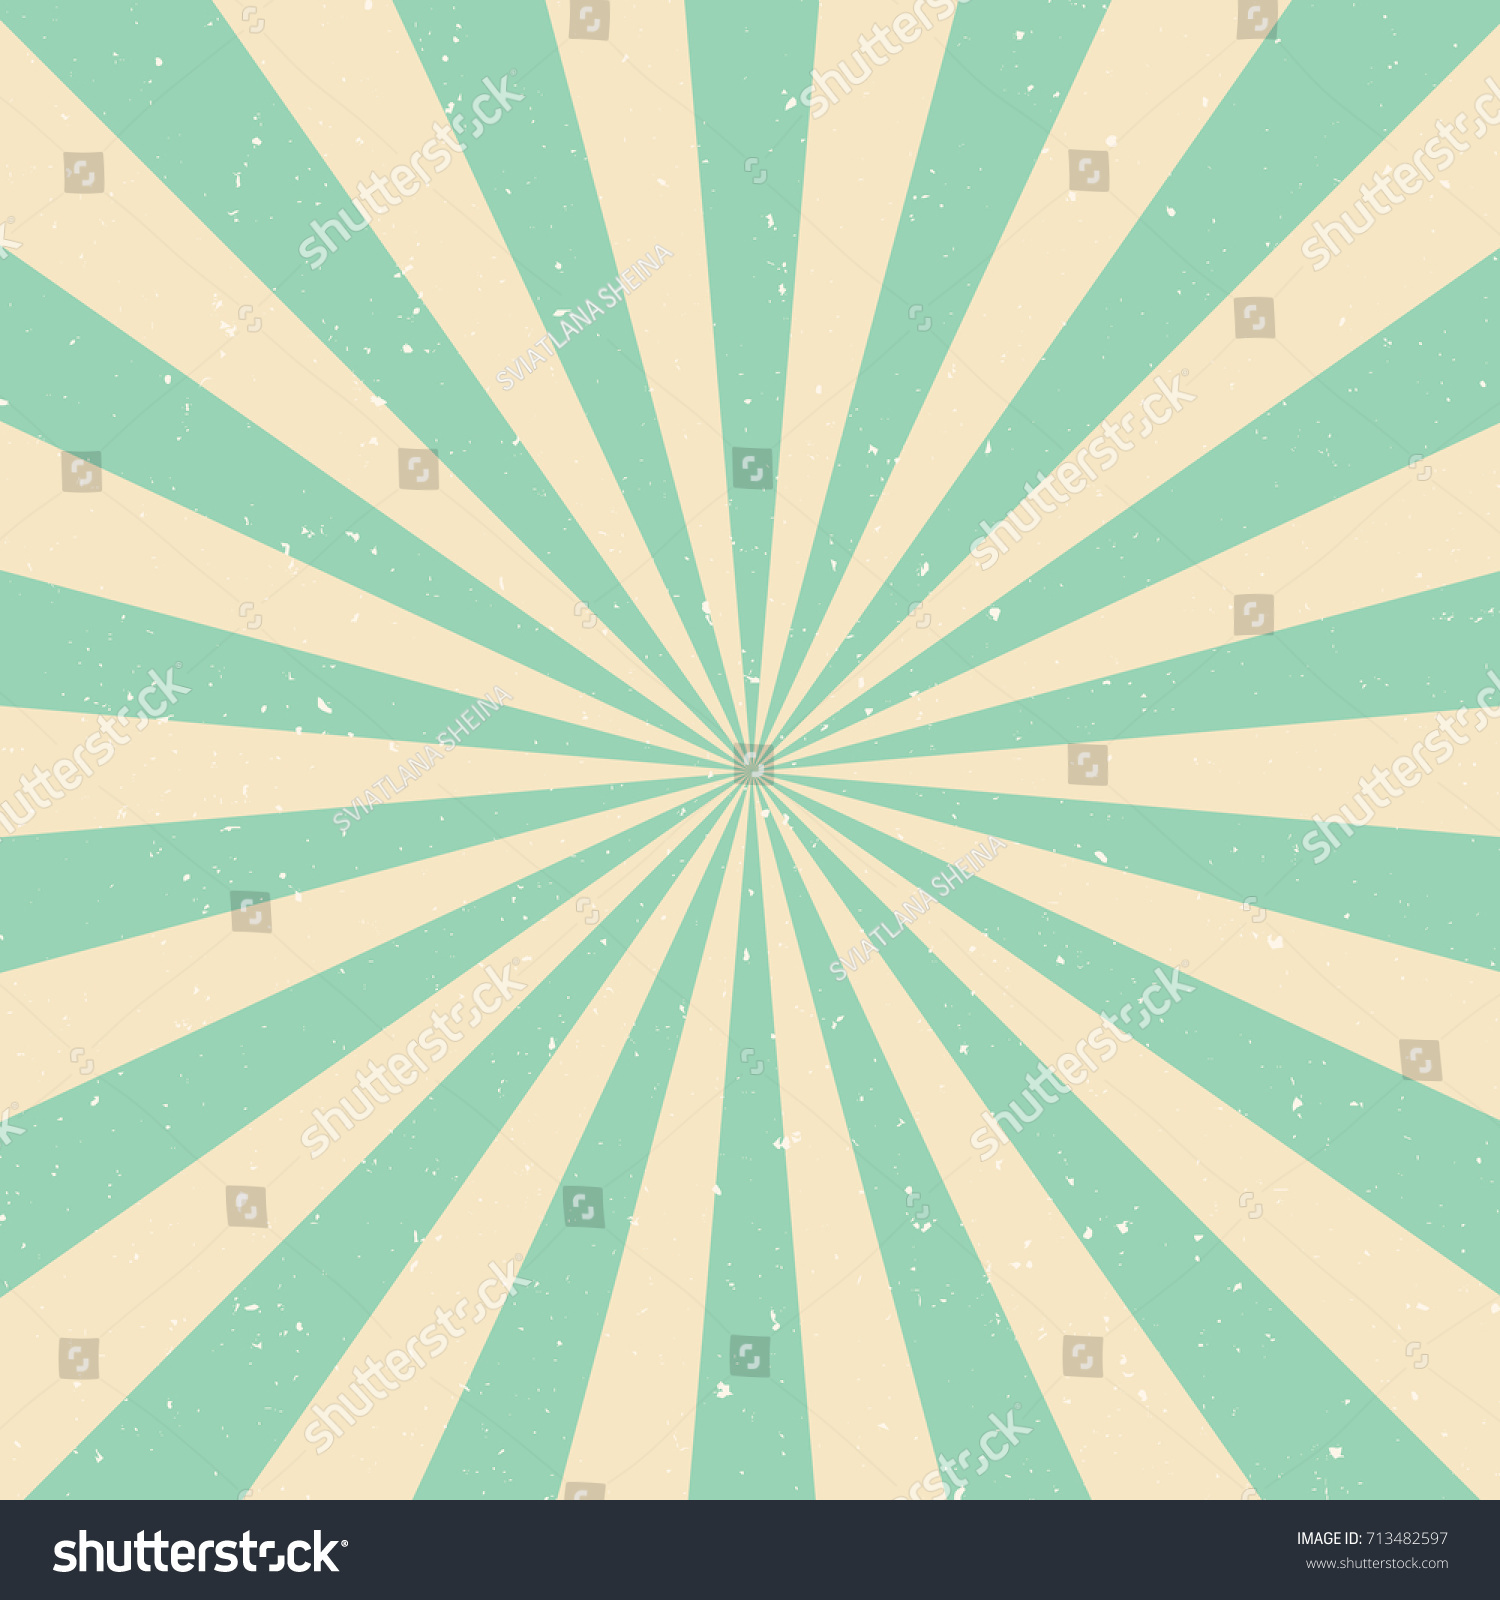 Trendy Rays Background Vintage Texture Grunge Stock Vector HD ...